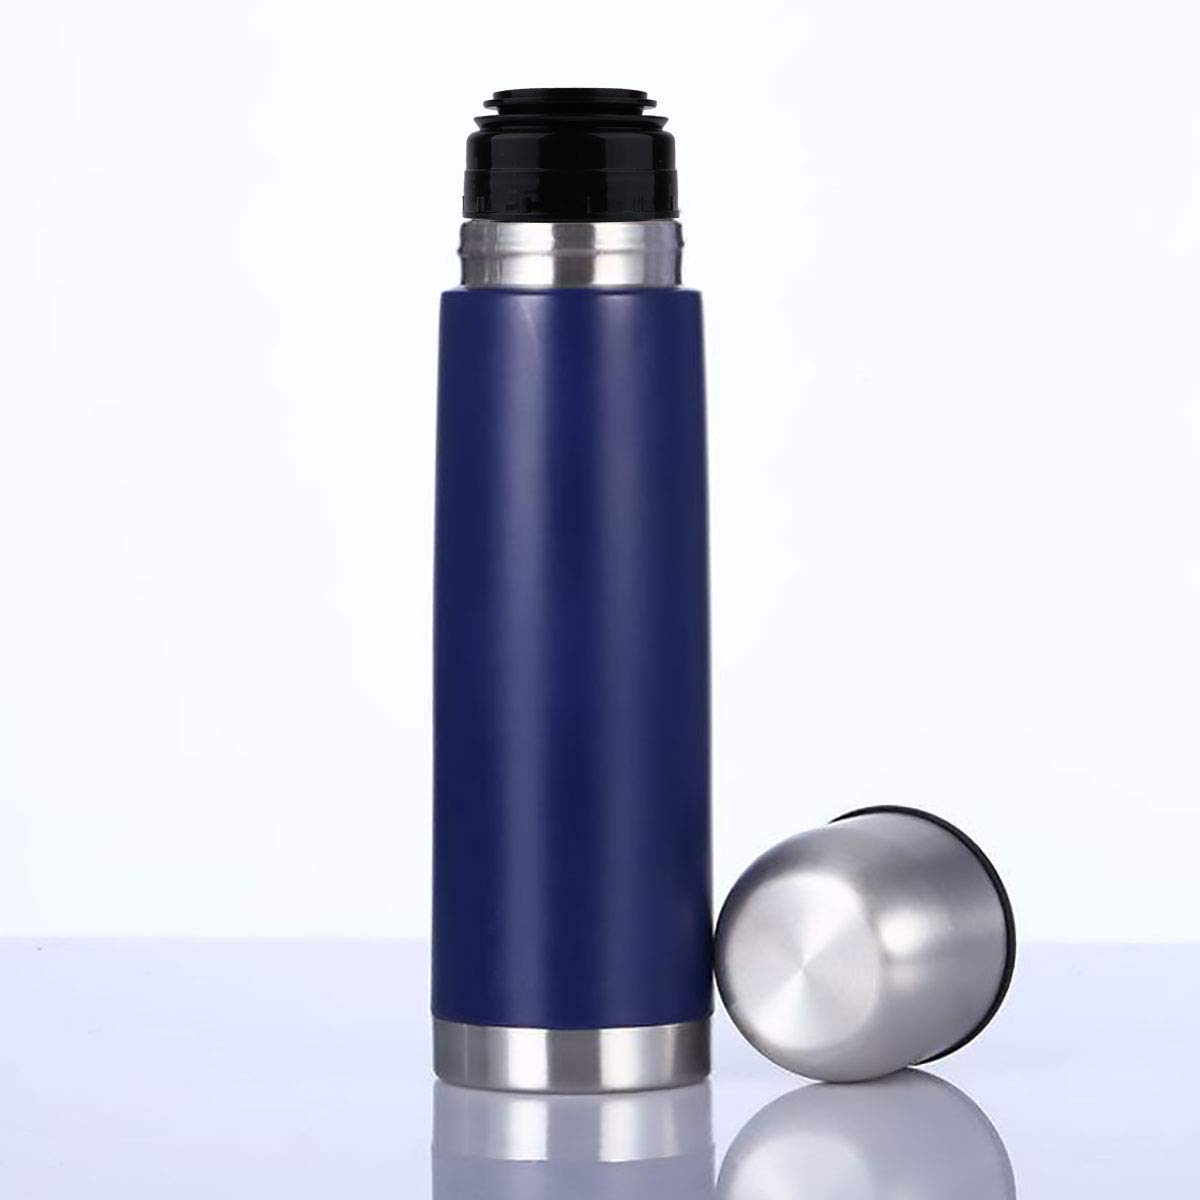 CHICTRY Thermos Bottle Cover Vacuum Cup Cover Leak Proof Flask Lid Thermo Mug Stopper Thermal Cup Lid Outdoor Travel Bullet Flask Covers